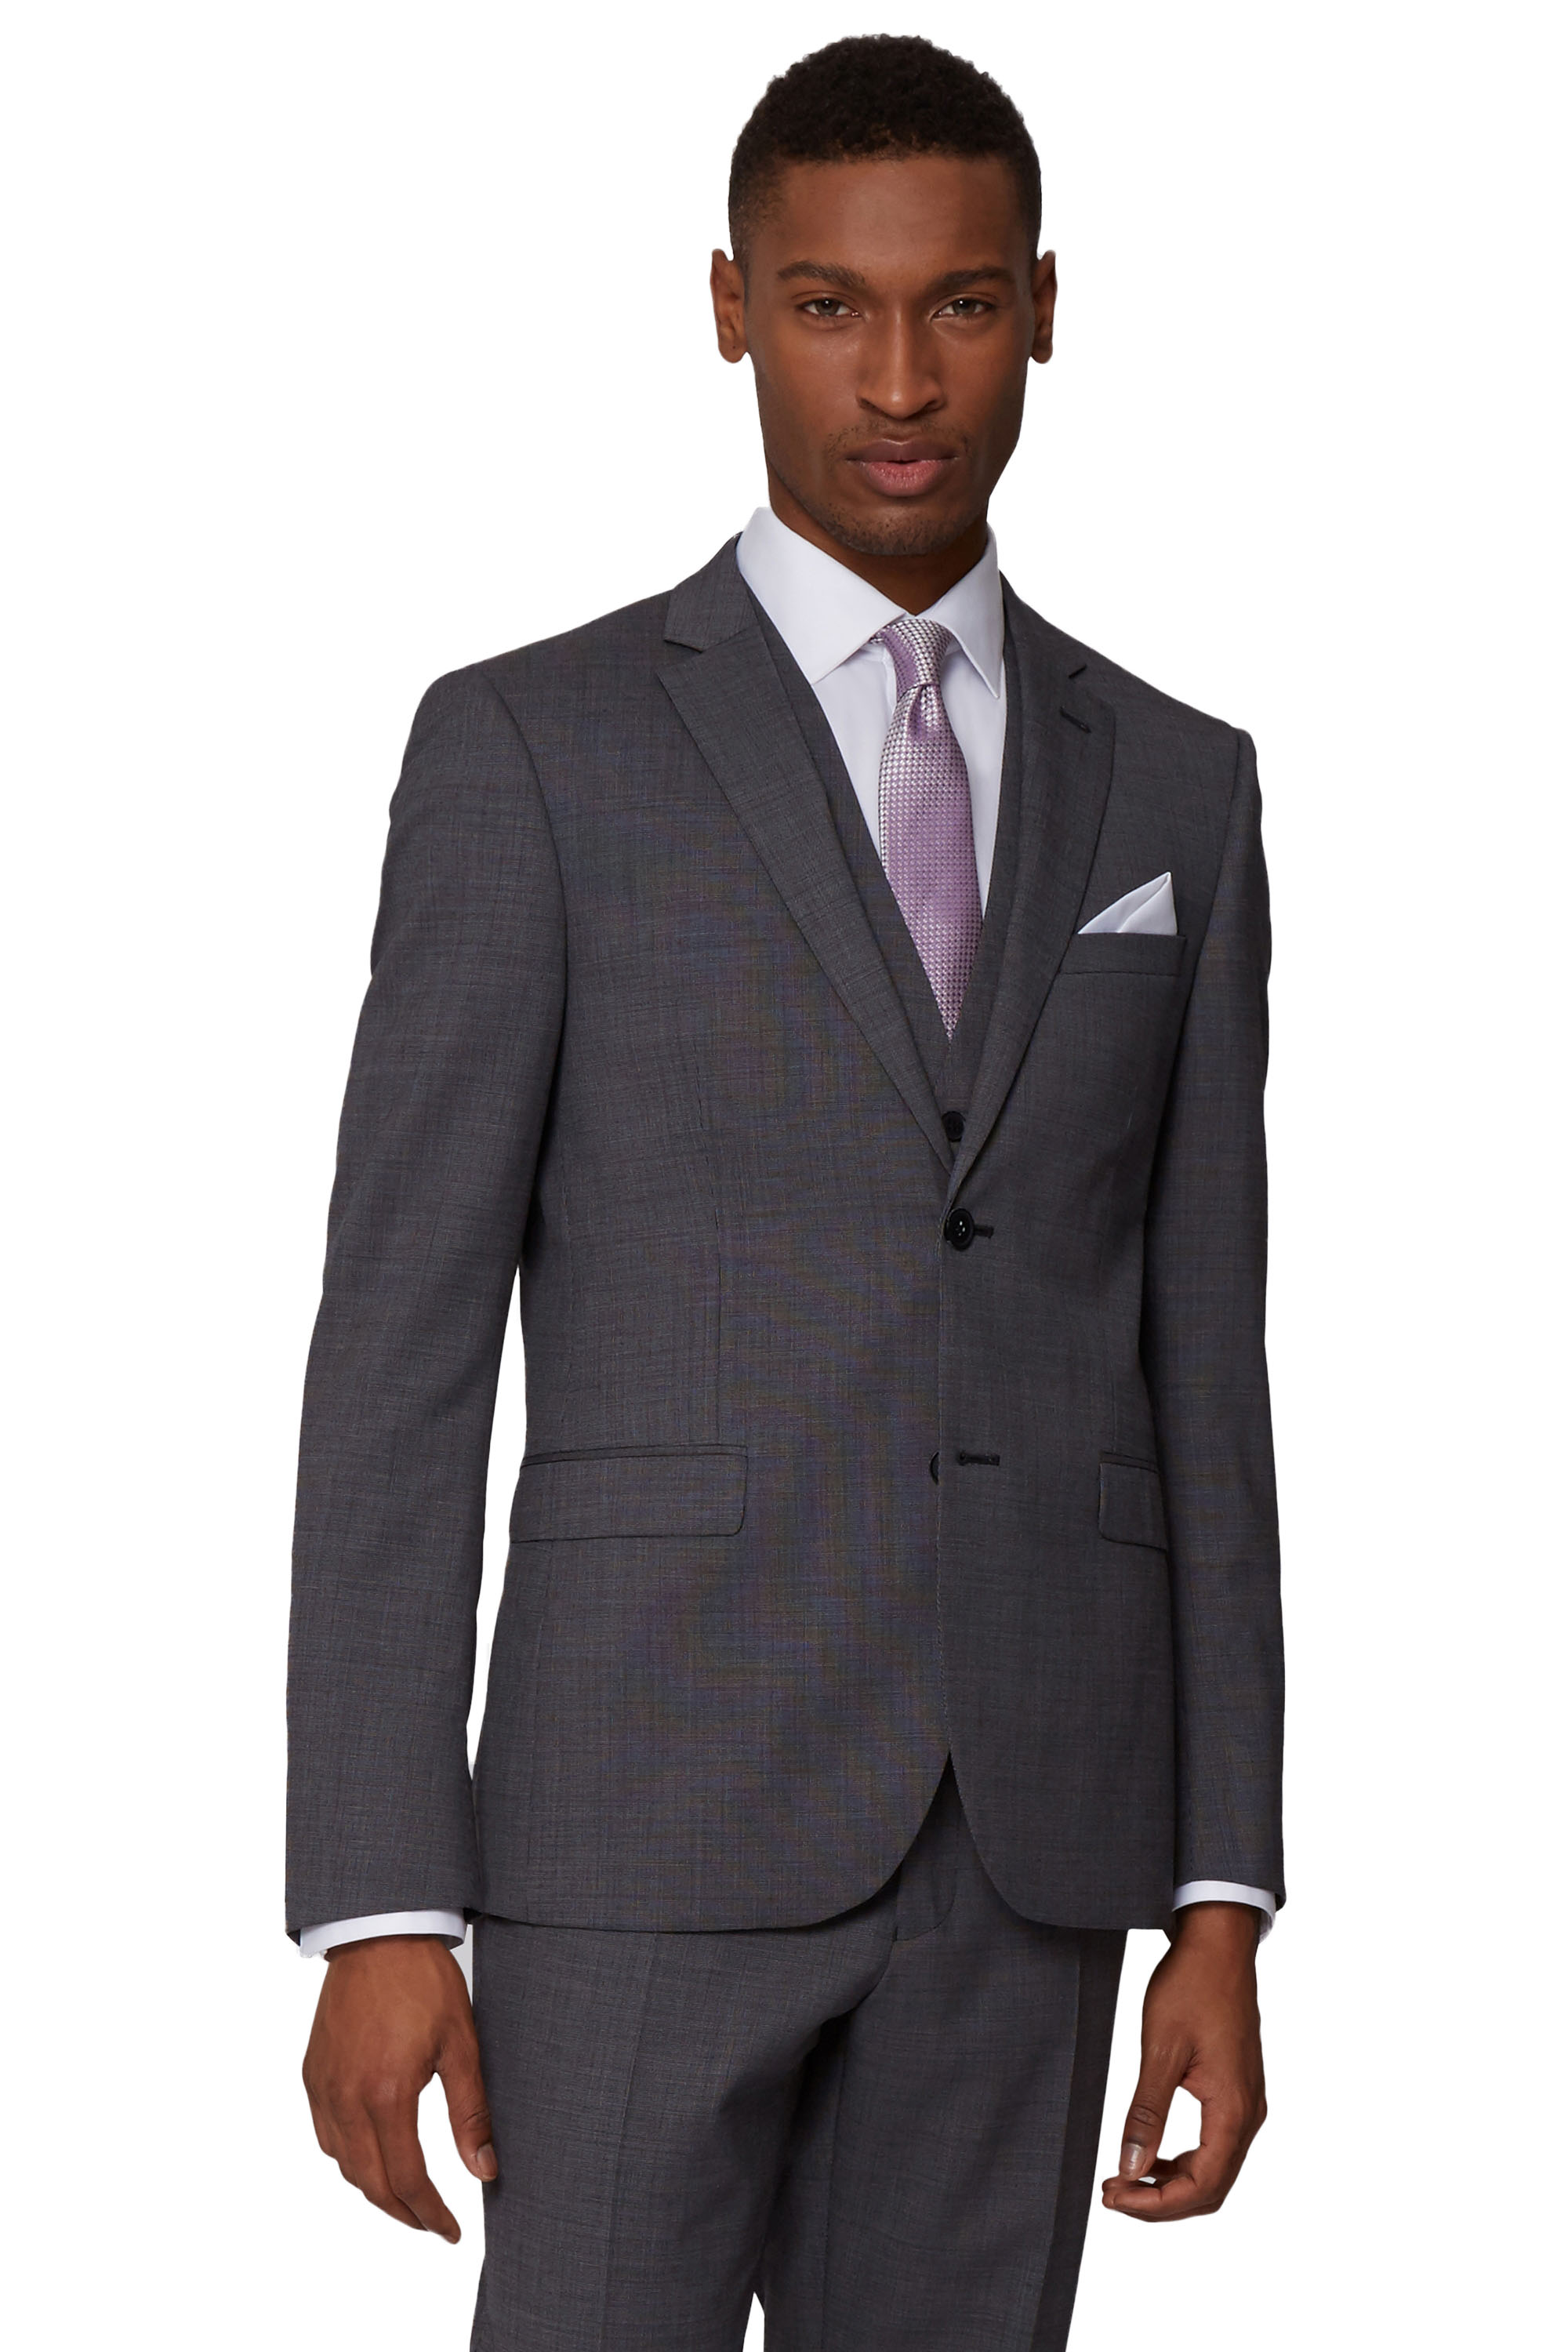 Charcoal Grey Suit Slim Fit - Go Suits